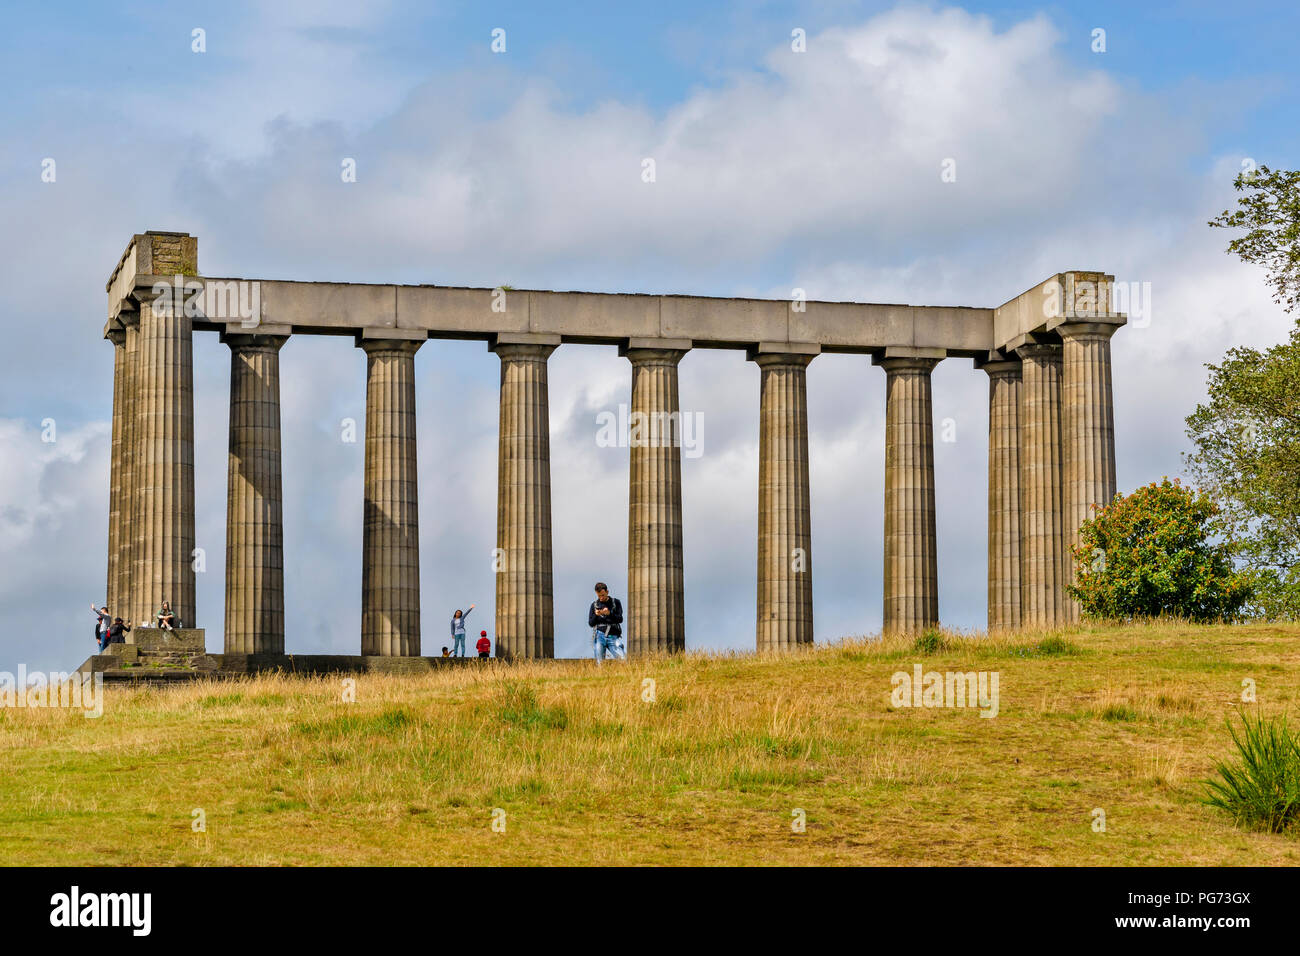 EDINBURGH SCOTLAND CALTON HILL THE NATIONAL MONUMENT OR ACROPOLIS AND TOURISTS IN SUMMER - Stock Image